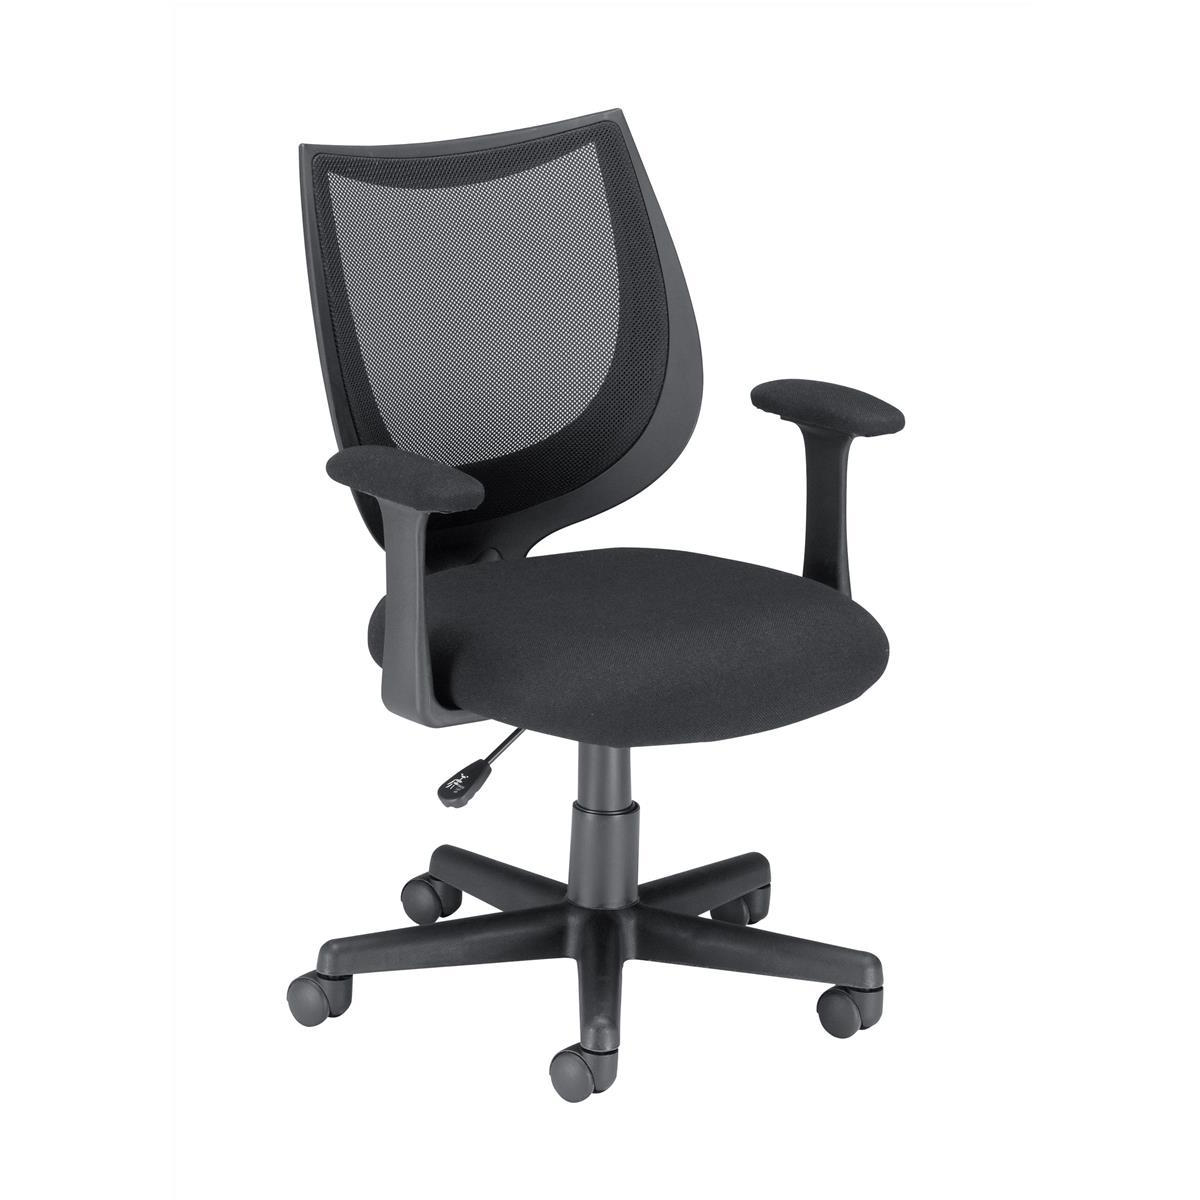 Trexus Gleam SoHo Mesh Operators Chair Black 470x480x410-510mm Ref 11027-03